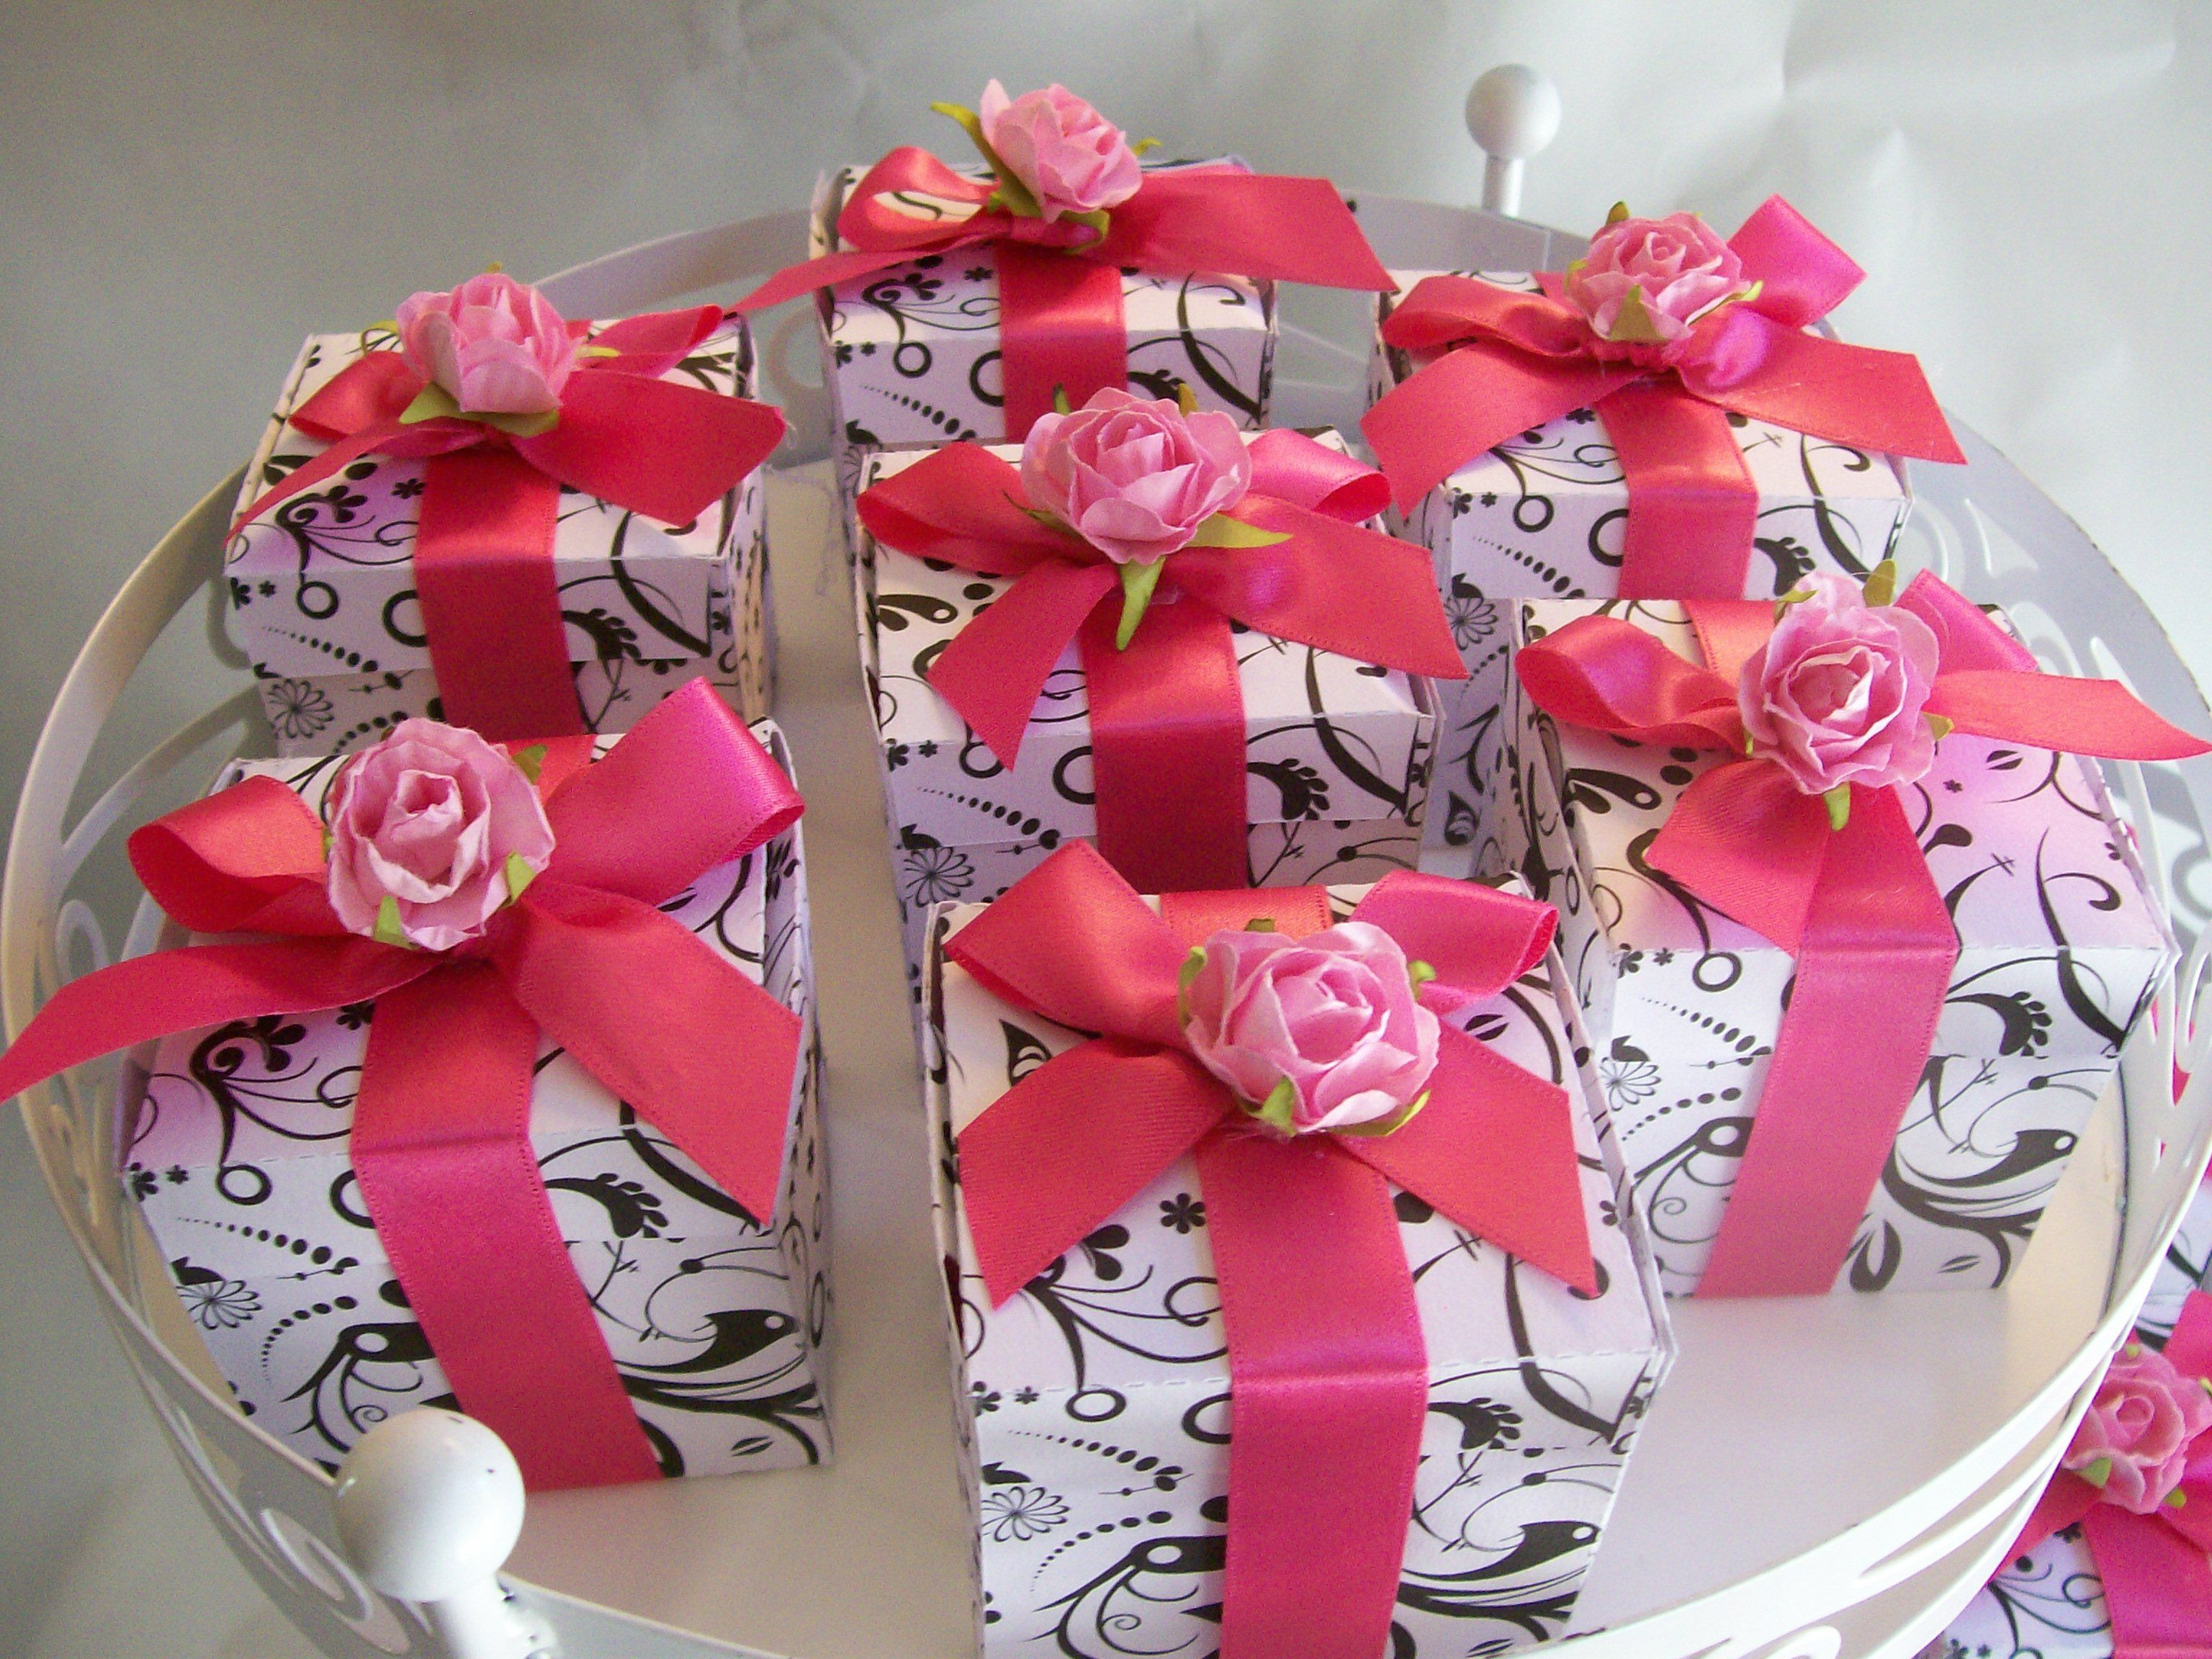 Best ideas about 80th Birthday Party Favors . Save or Pin Party favor t boxes 80th Birthday Party Theme Now.